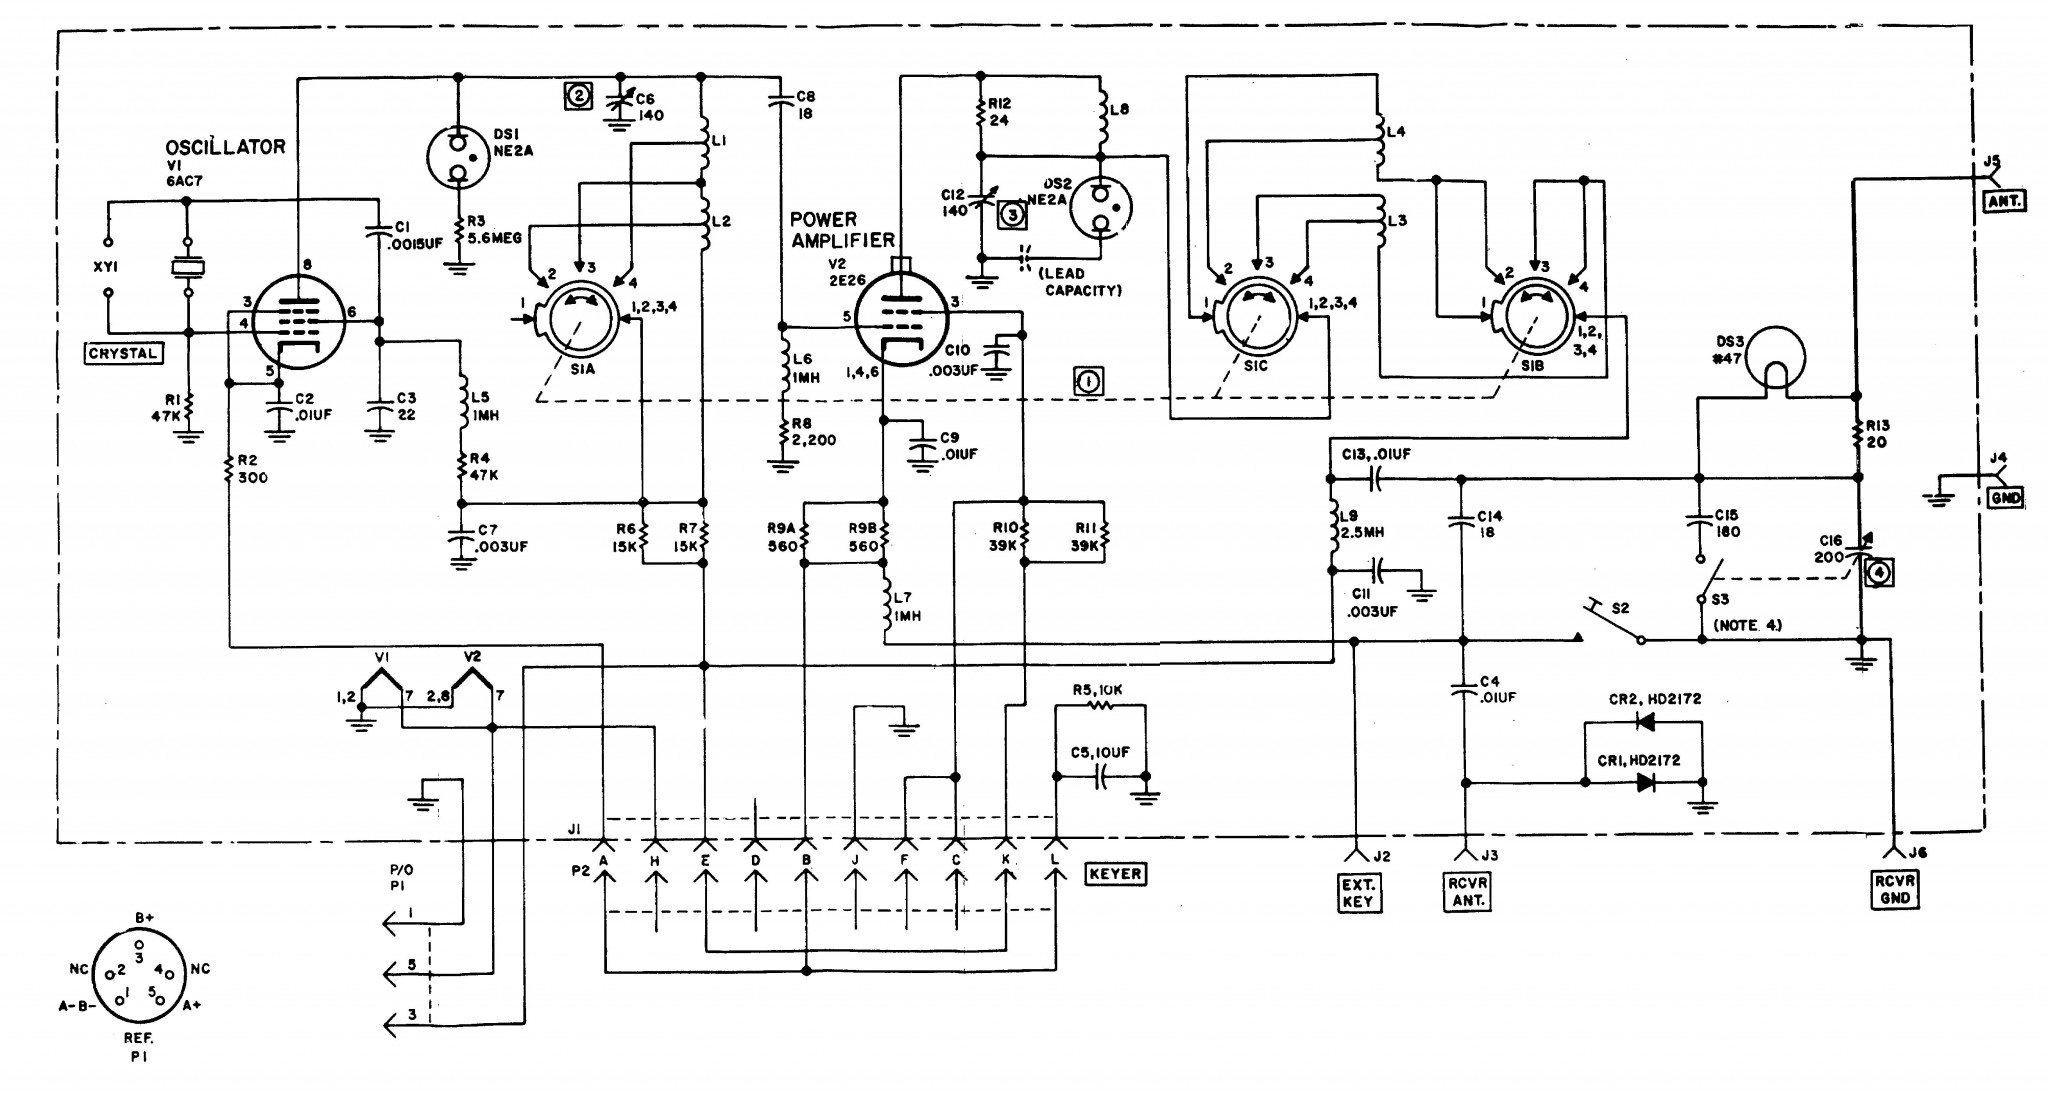 Zx 600 Wiring Diagram in addition Nutone Doorbell Wiring Diagram further Electrical Diagram For Bell House Door additionally Mori Seiki Wiring Diagrams besides Standard Doorbell Wiring. on wiring lighted doorbell on